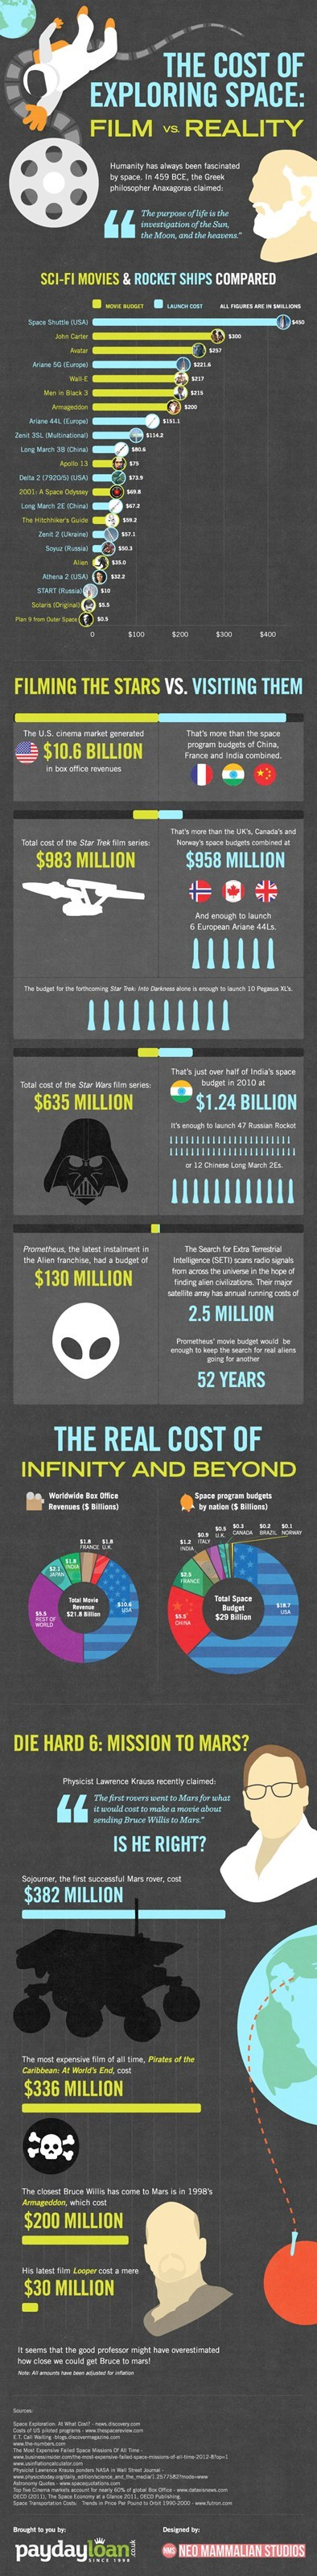 The Cost of Space